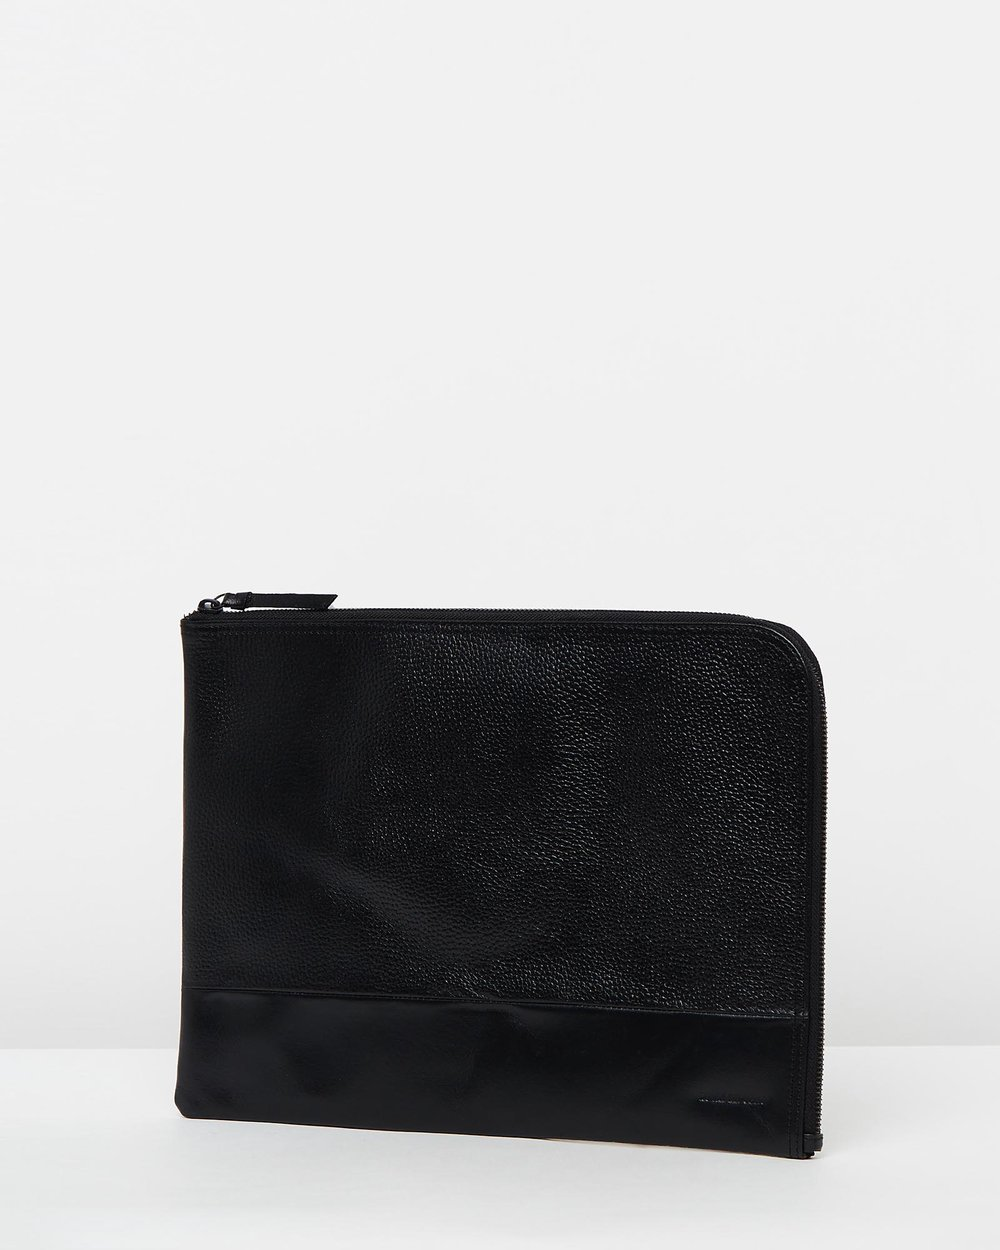 5d3bd8eeab1d Caviar Laptop Sleeve by Royal Republiq Online